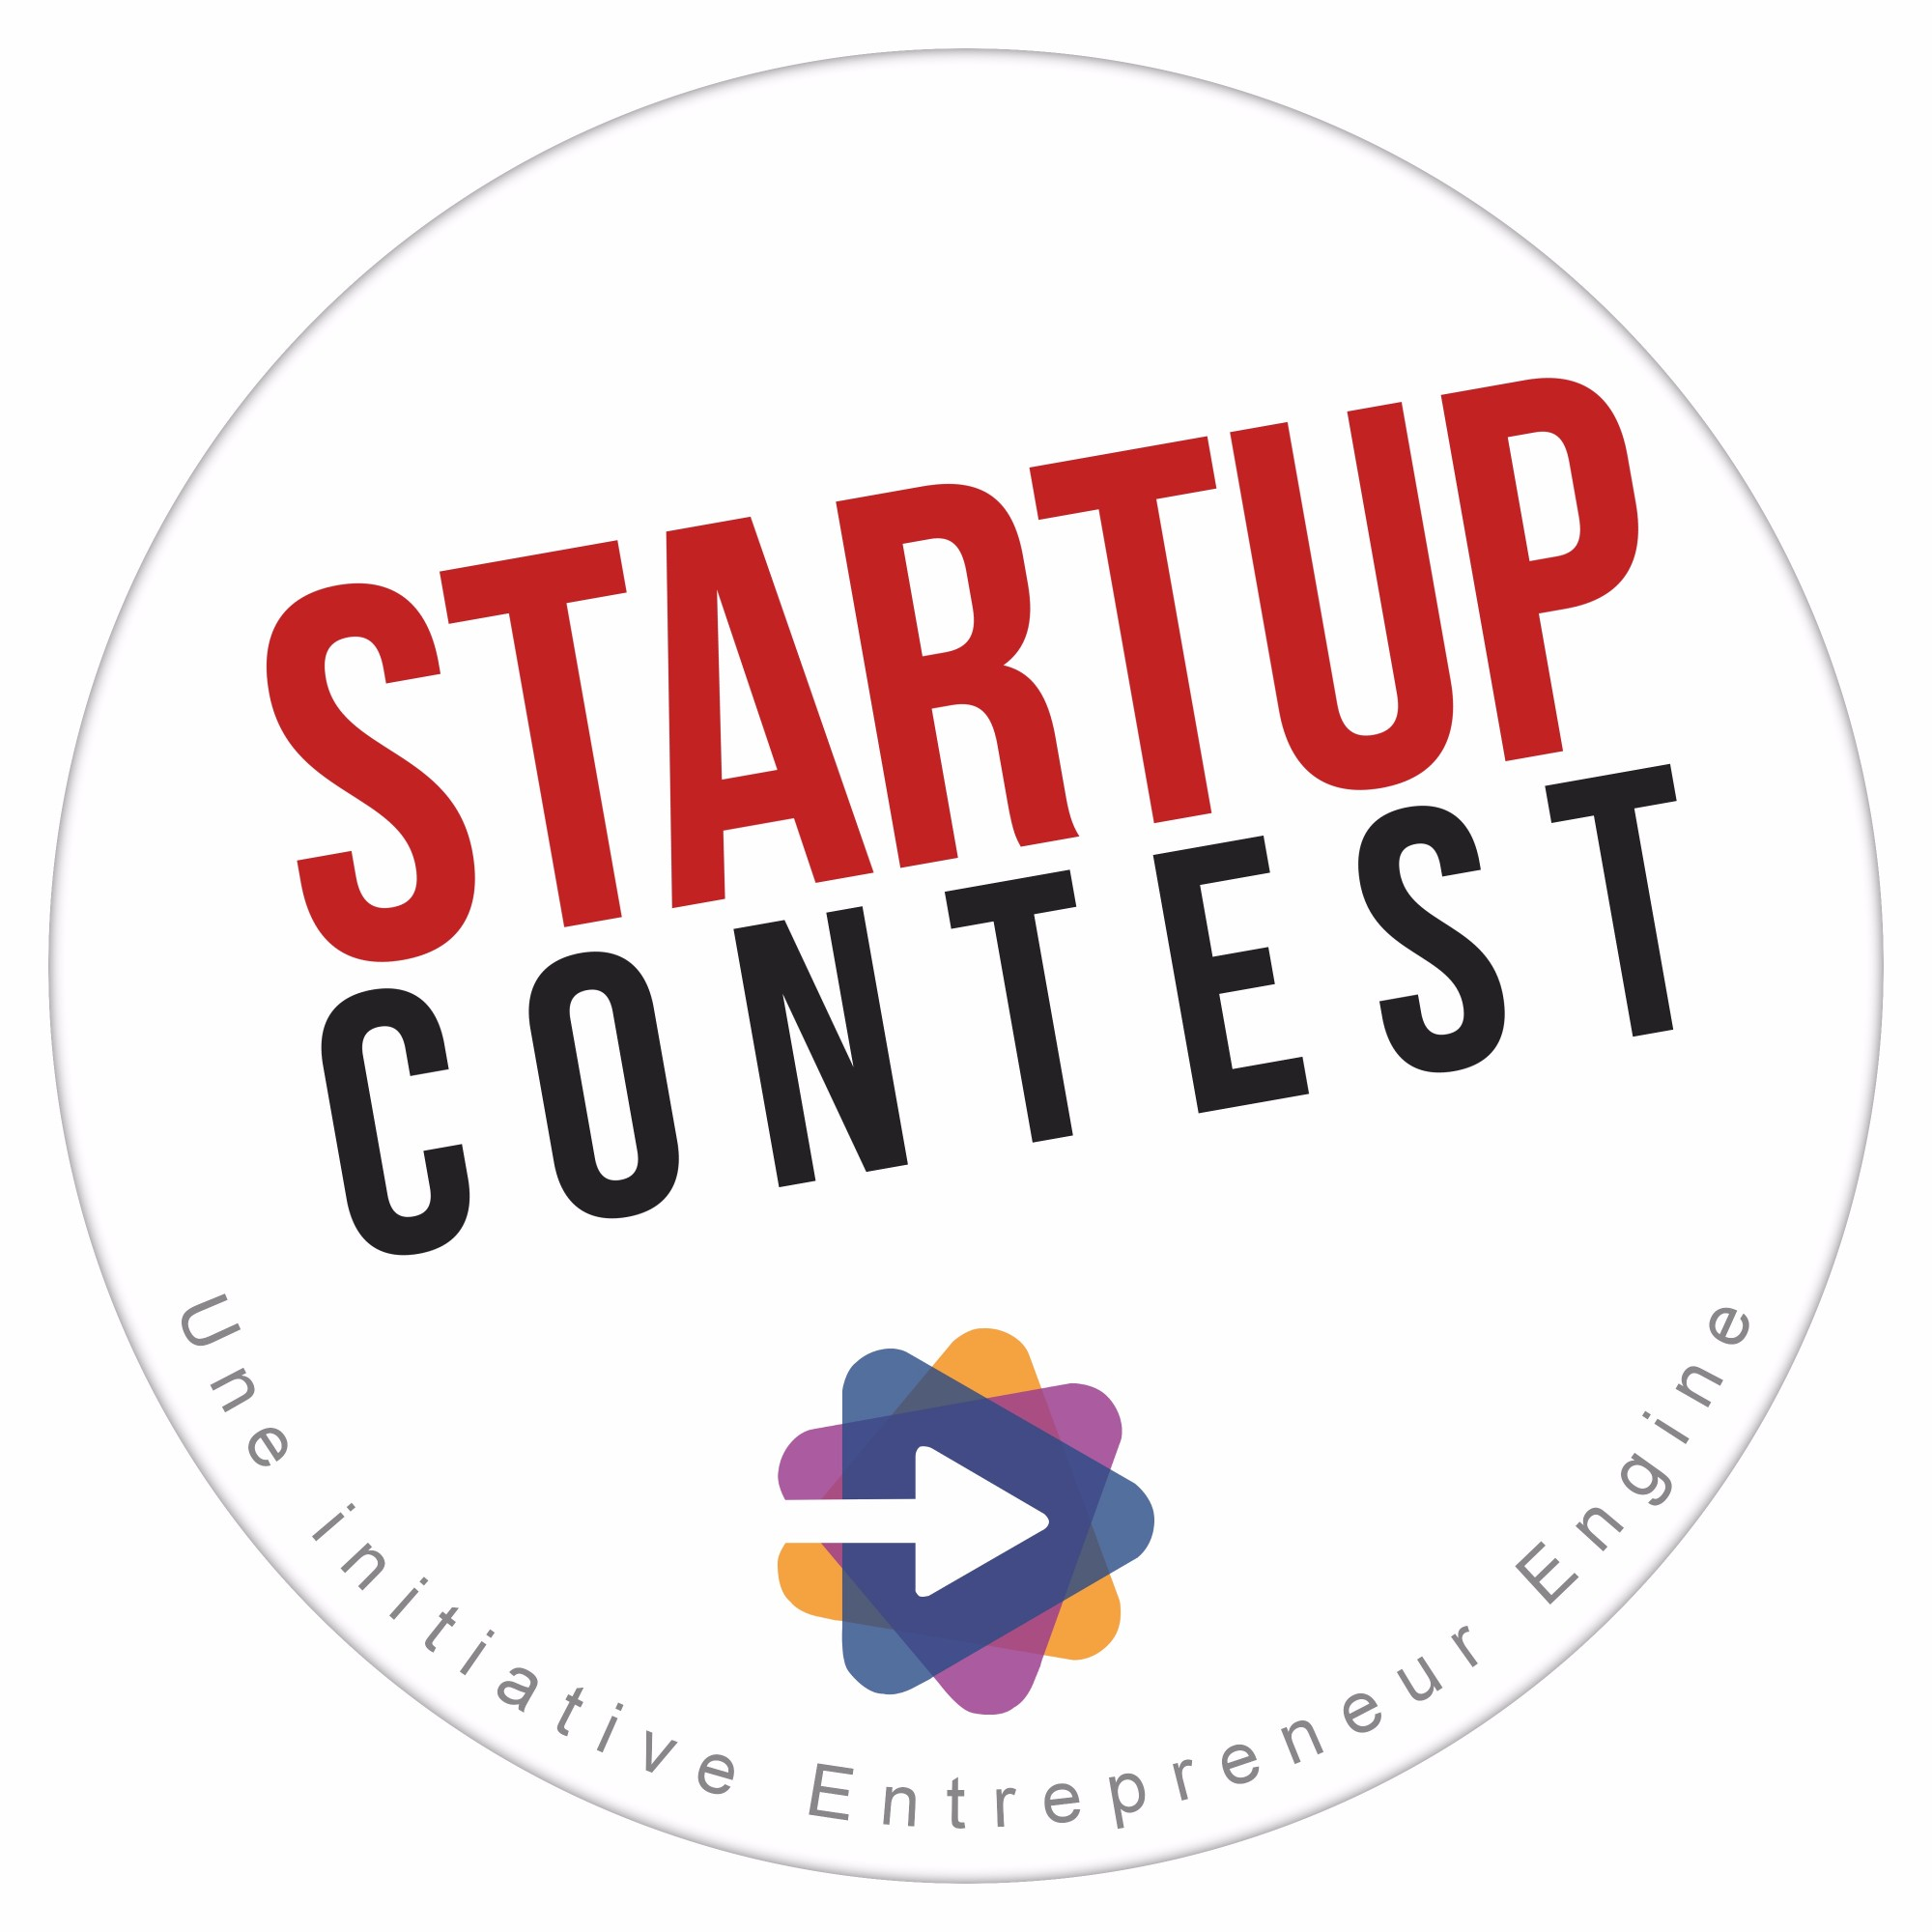 PITCH BOXING DAY STARTUP CONTEST